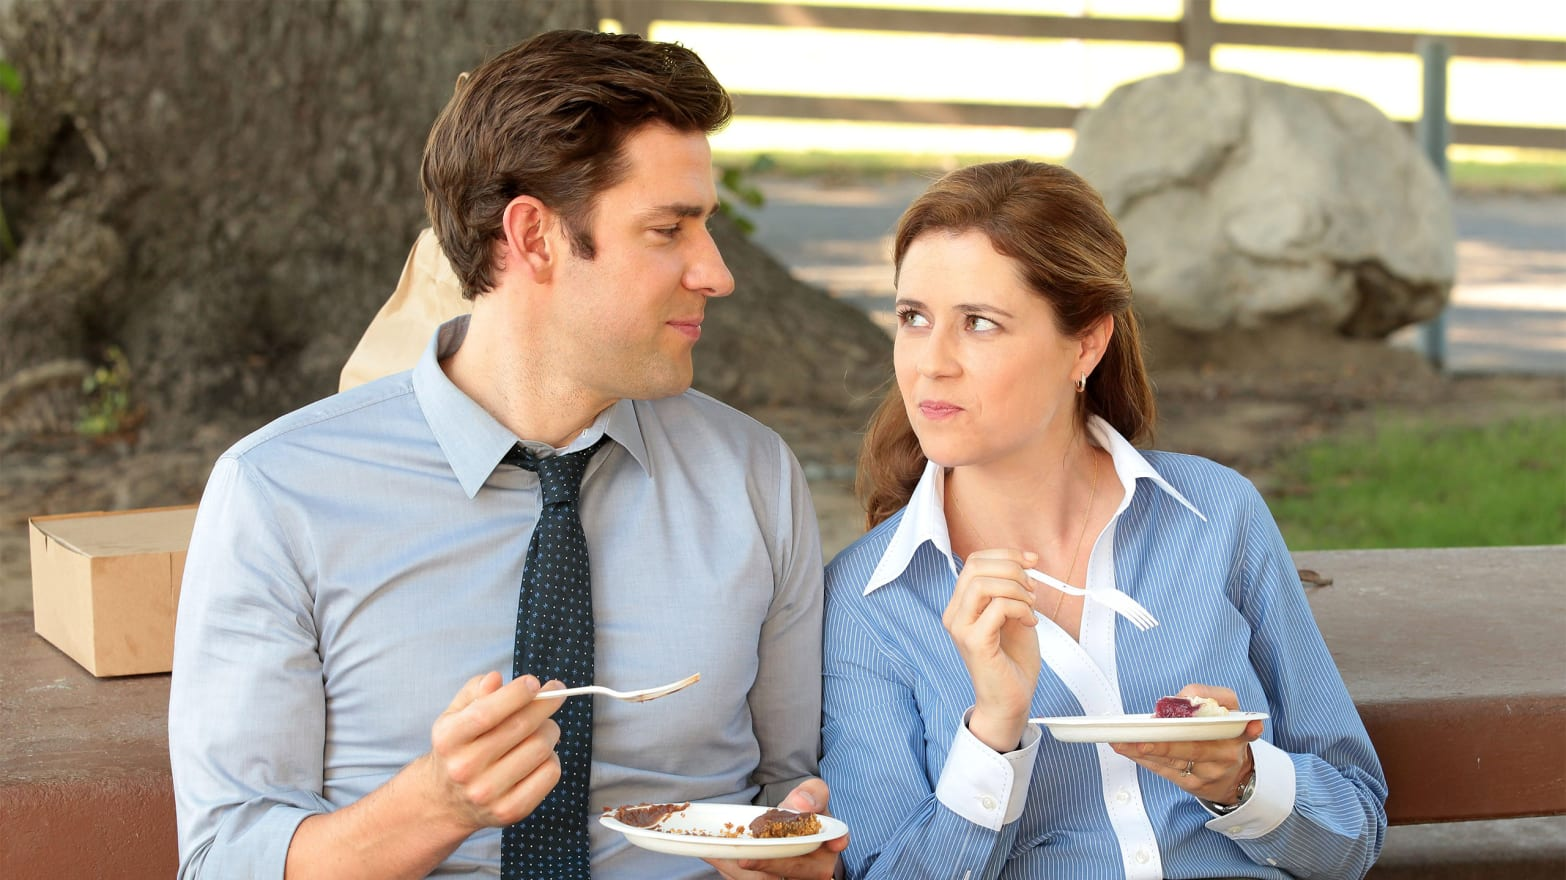 John Krasinski: Sorry 'Office' Fans, Jenna Fischer and I